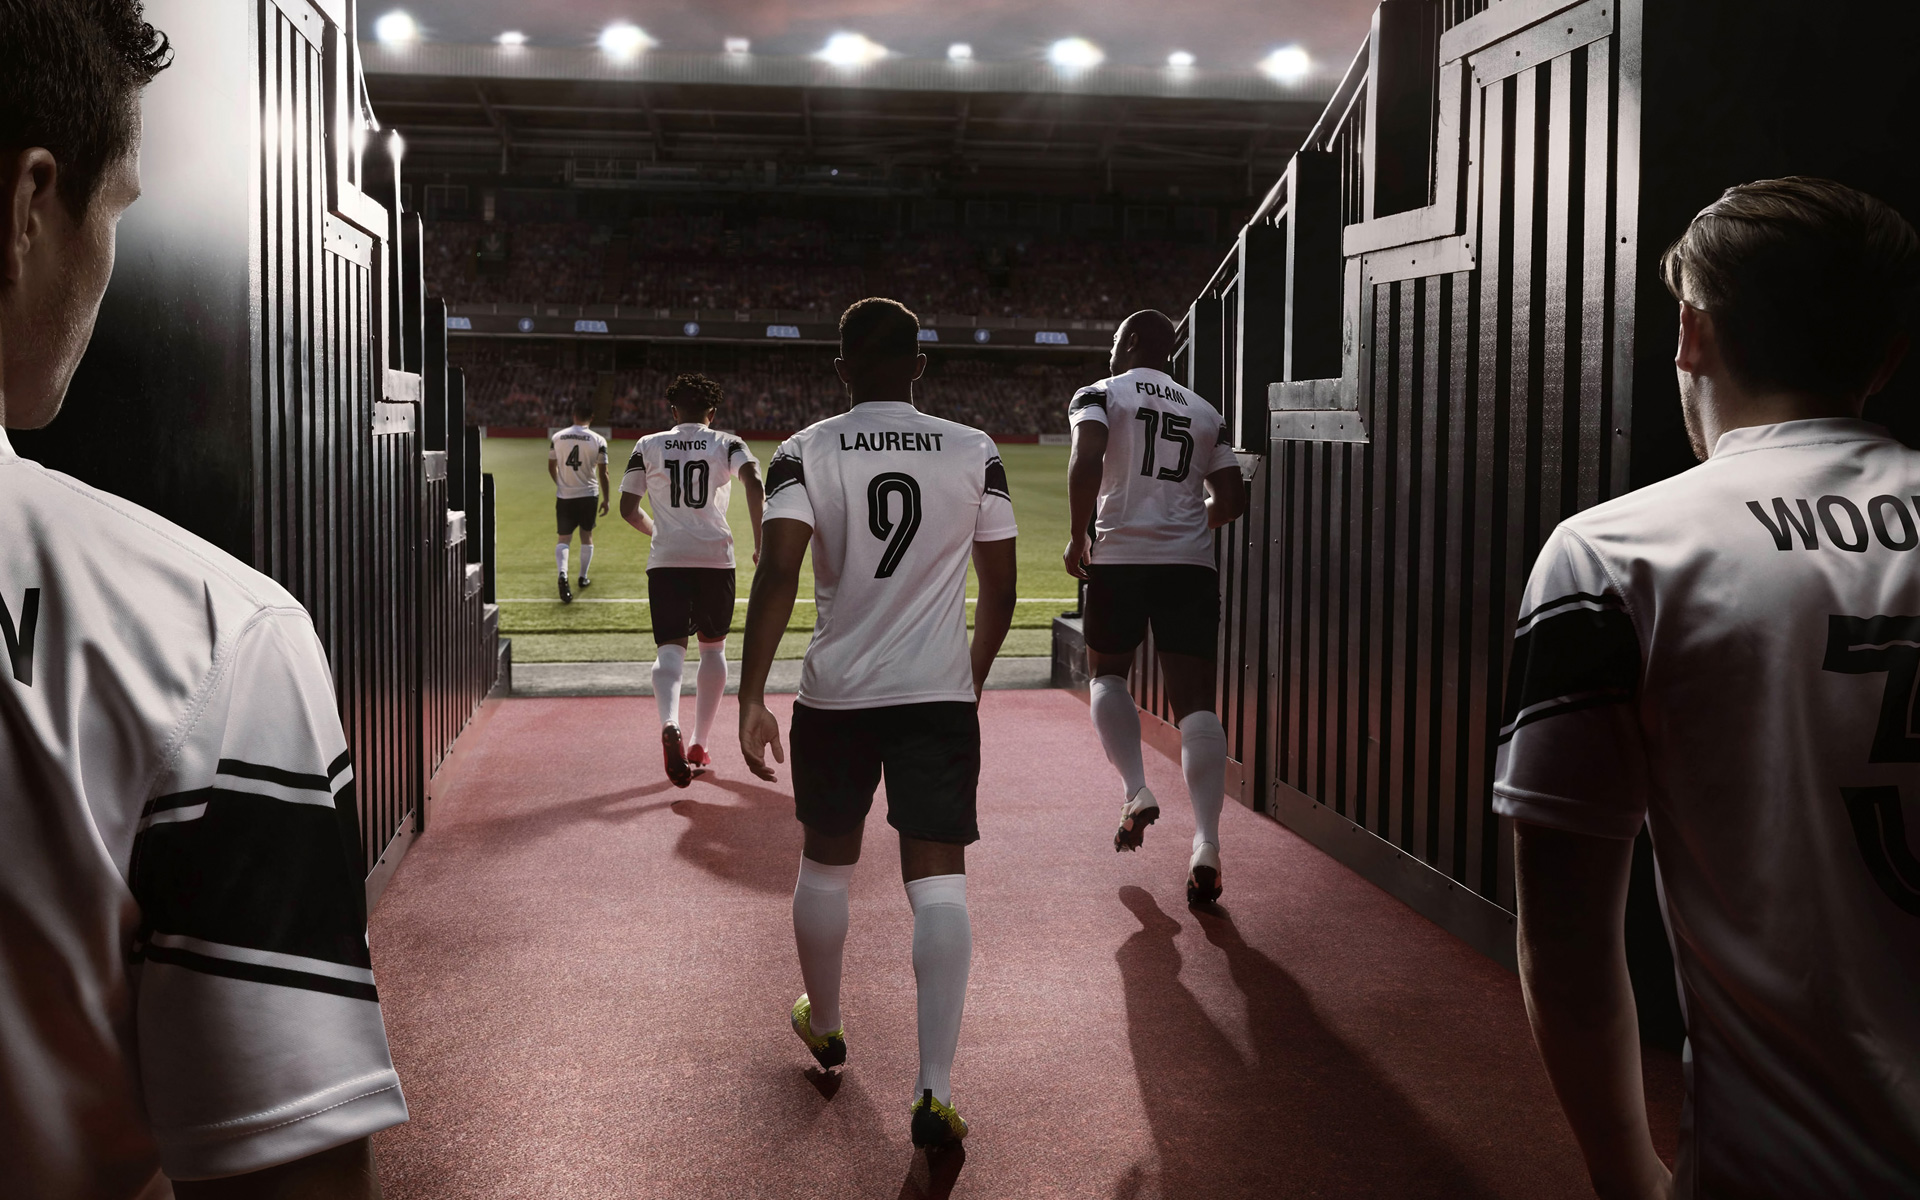 Free Football Manager 2019 Wallpaper in 1920x1200